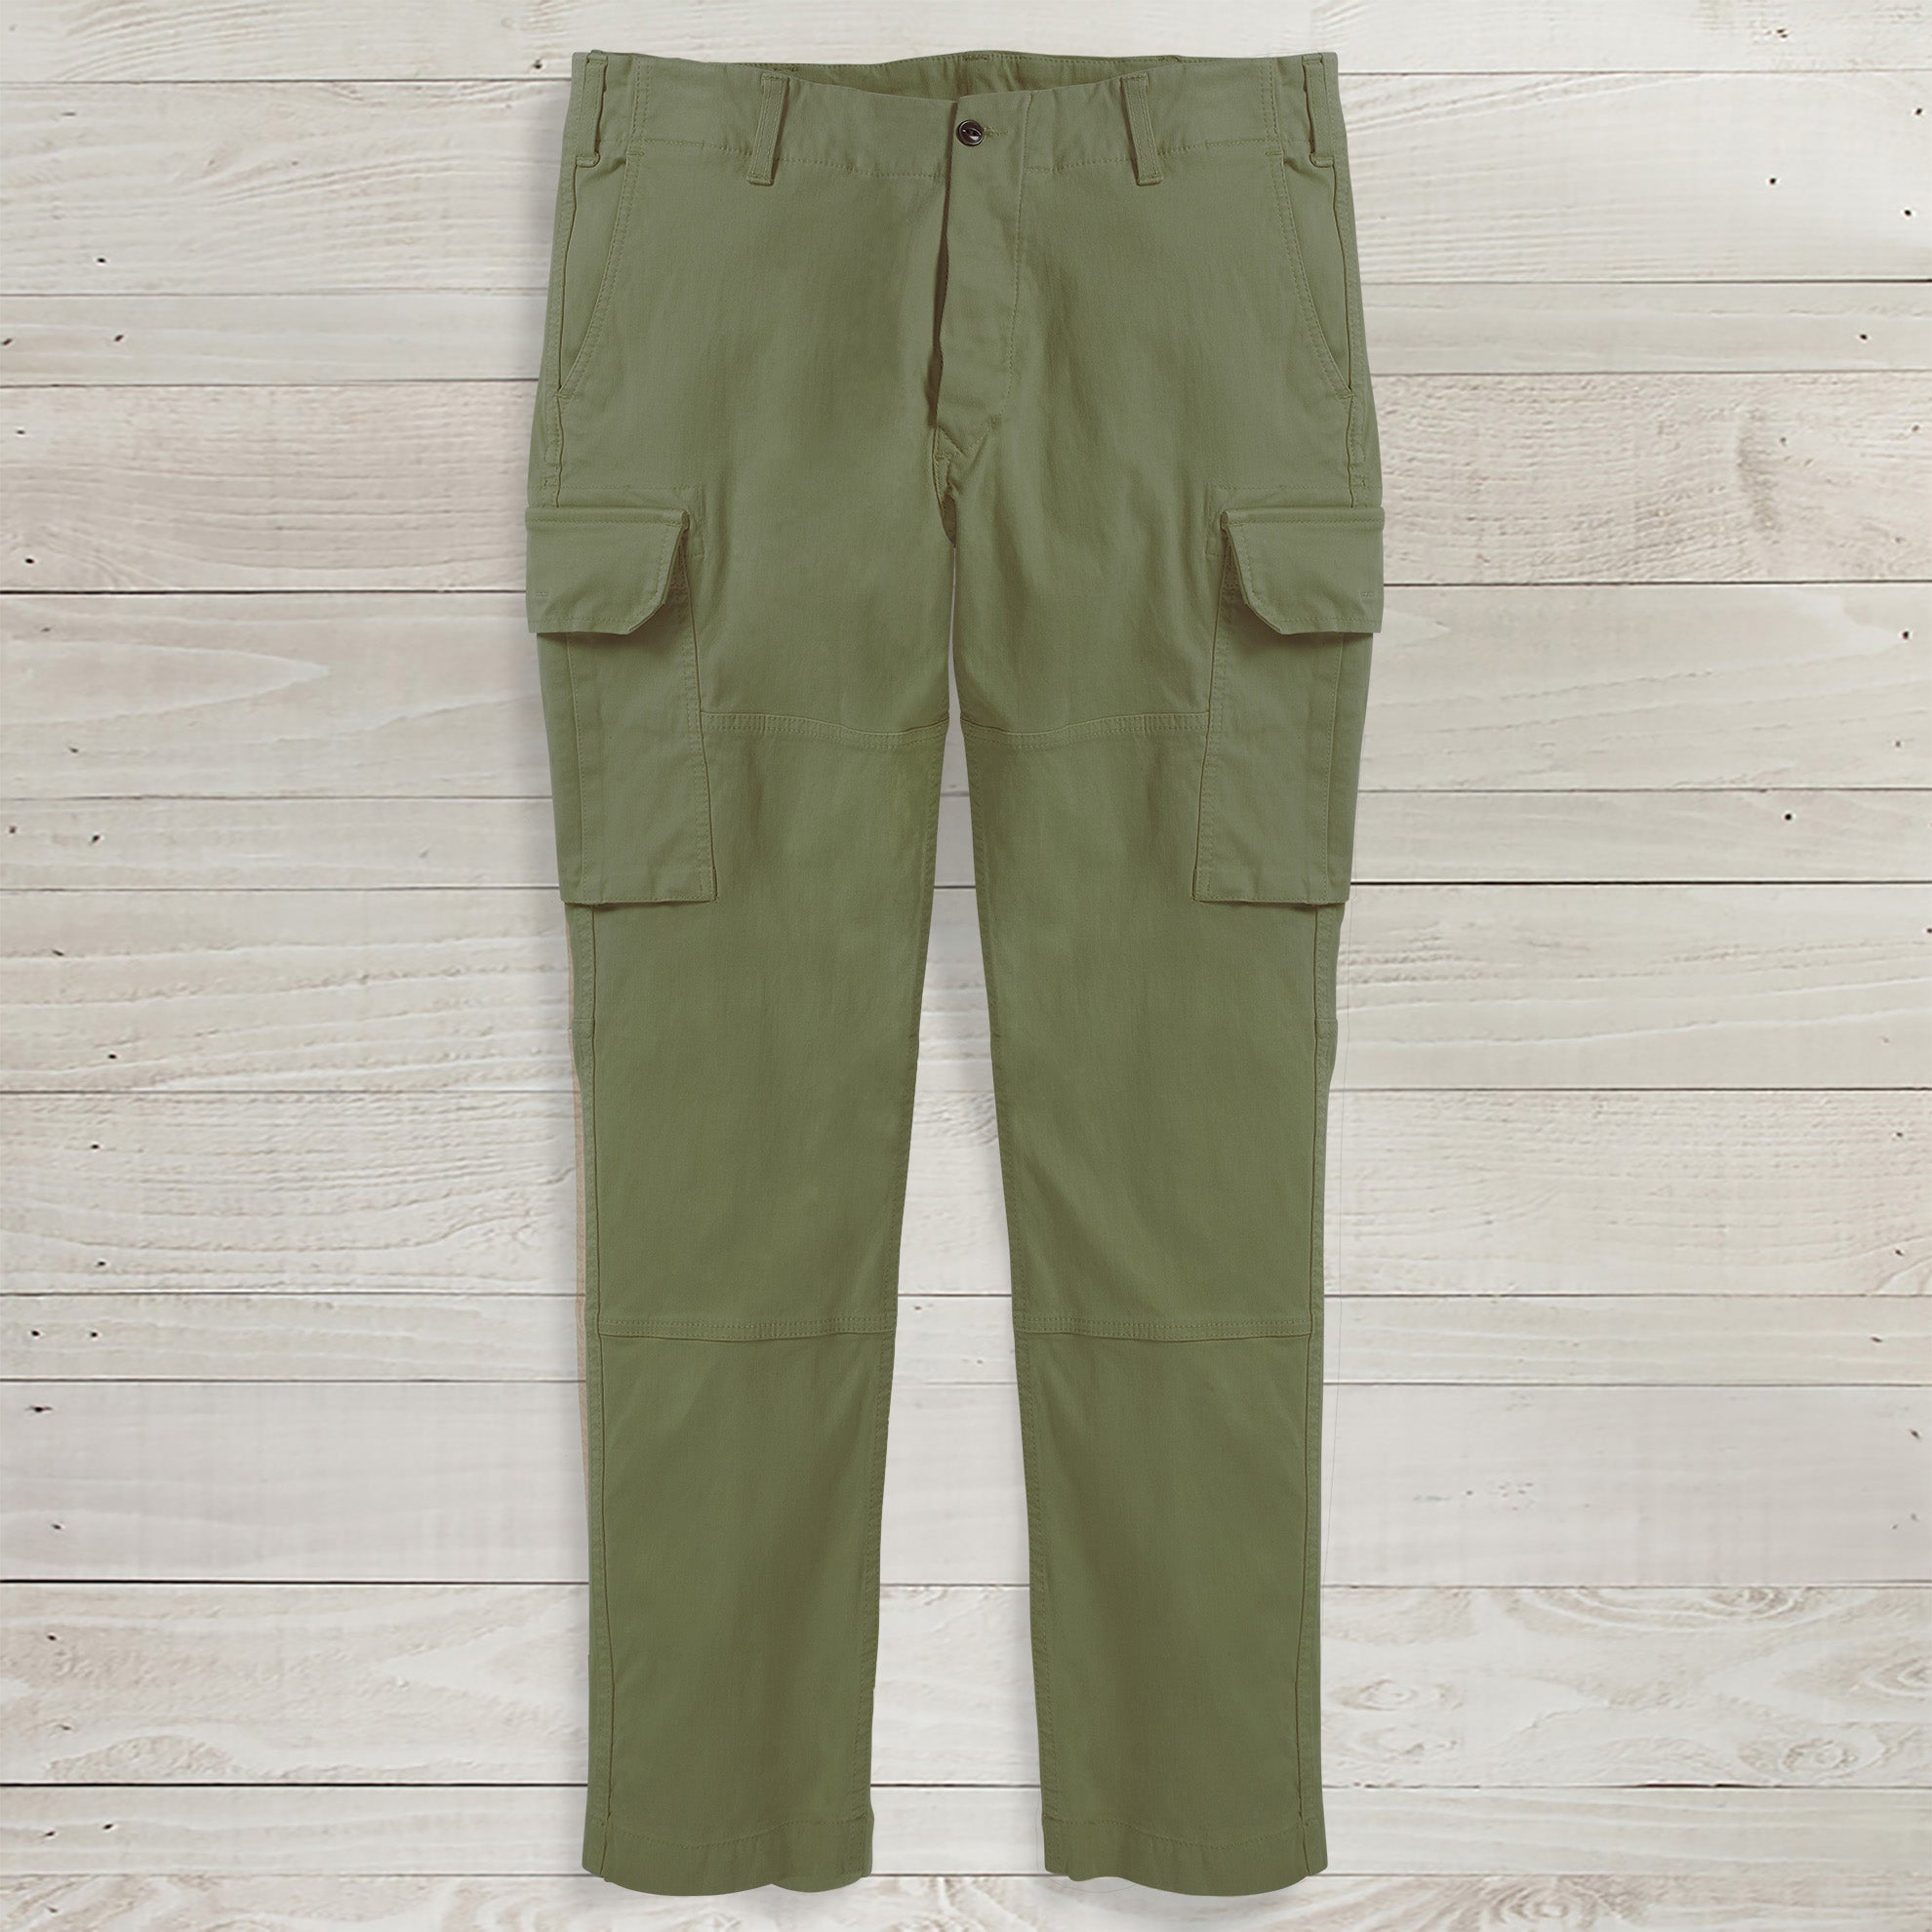 Corded Cargo Pants